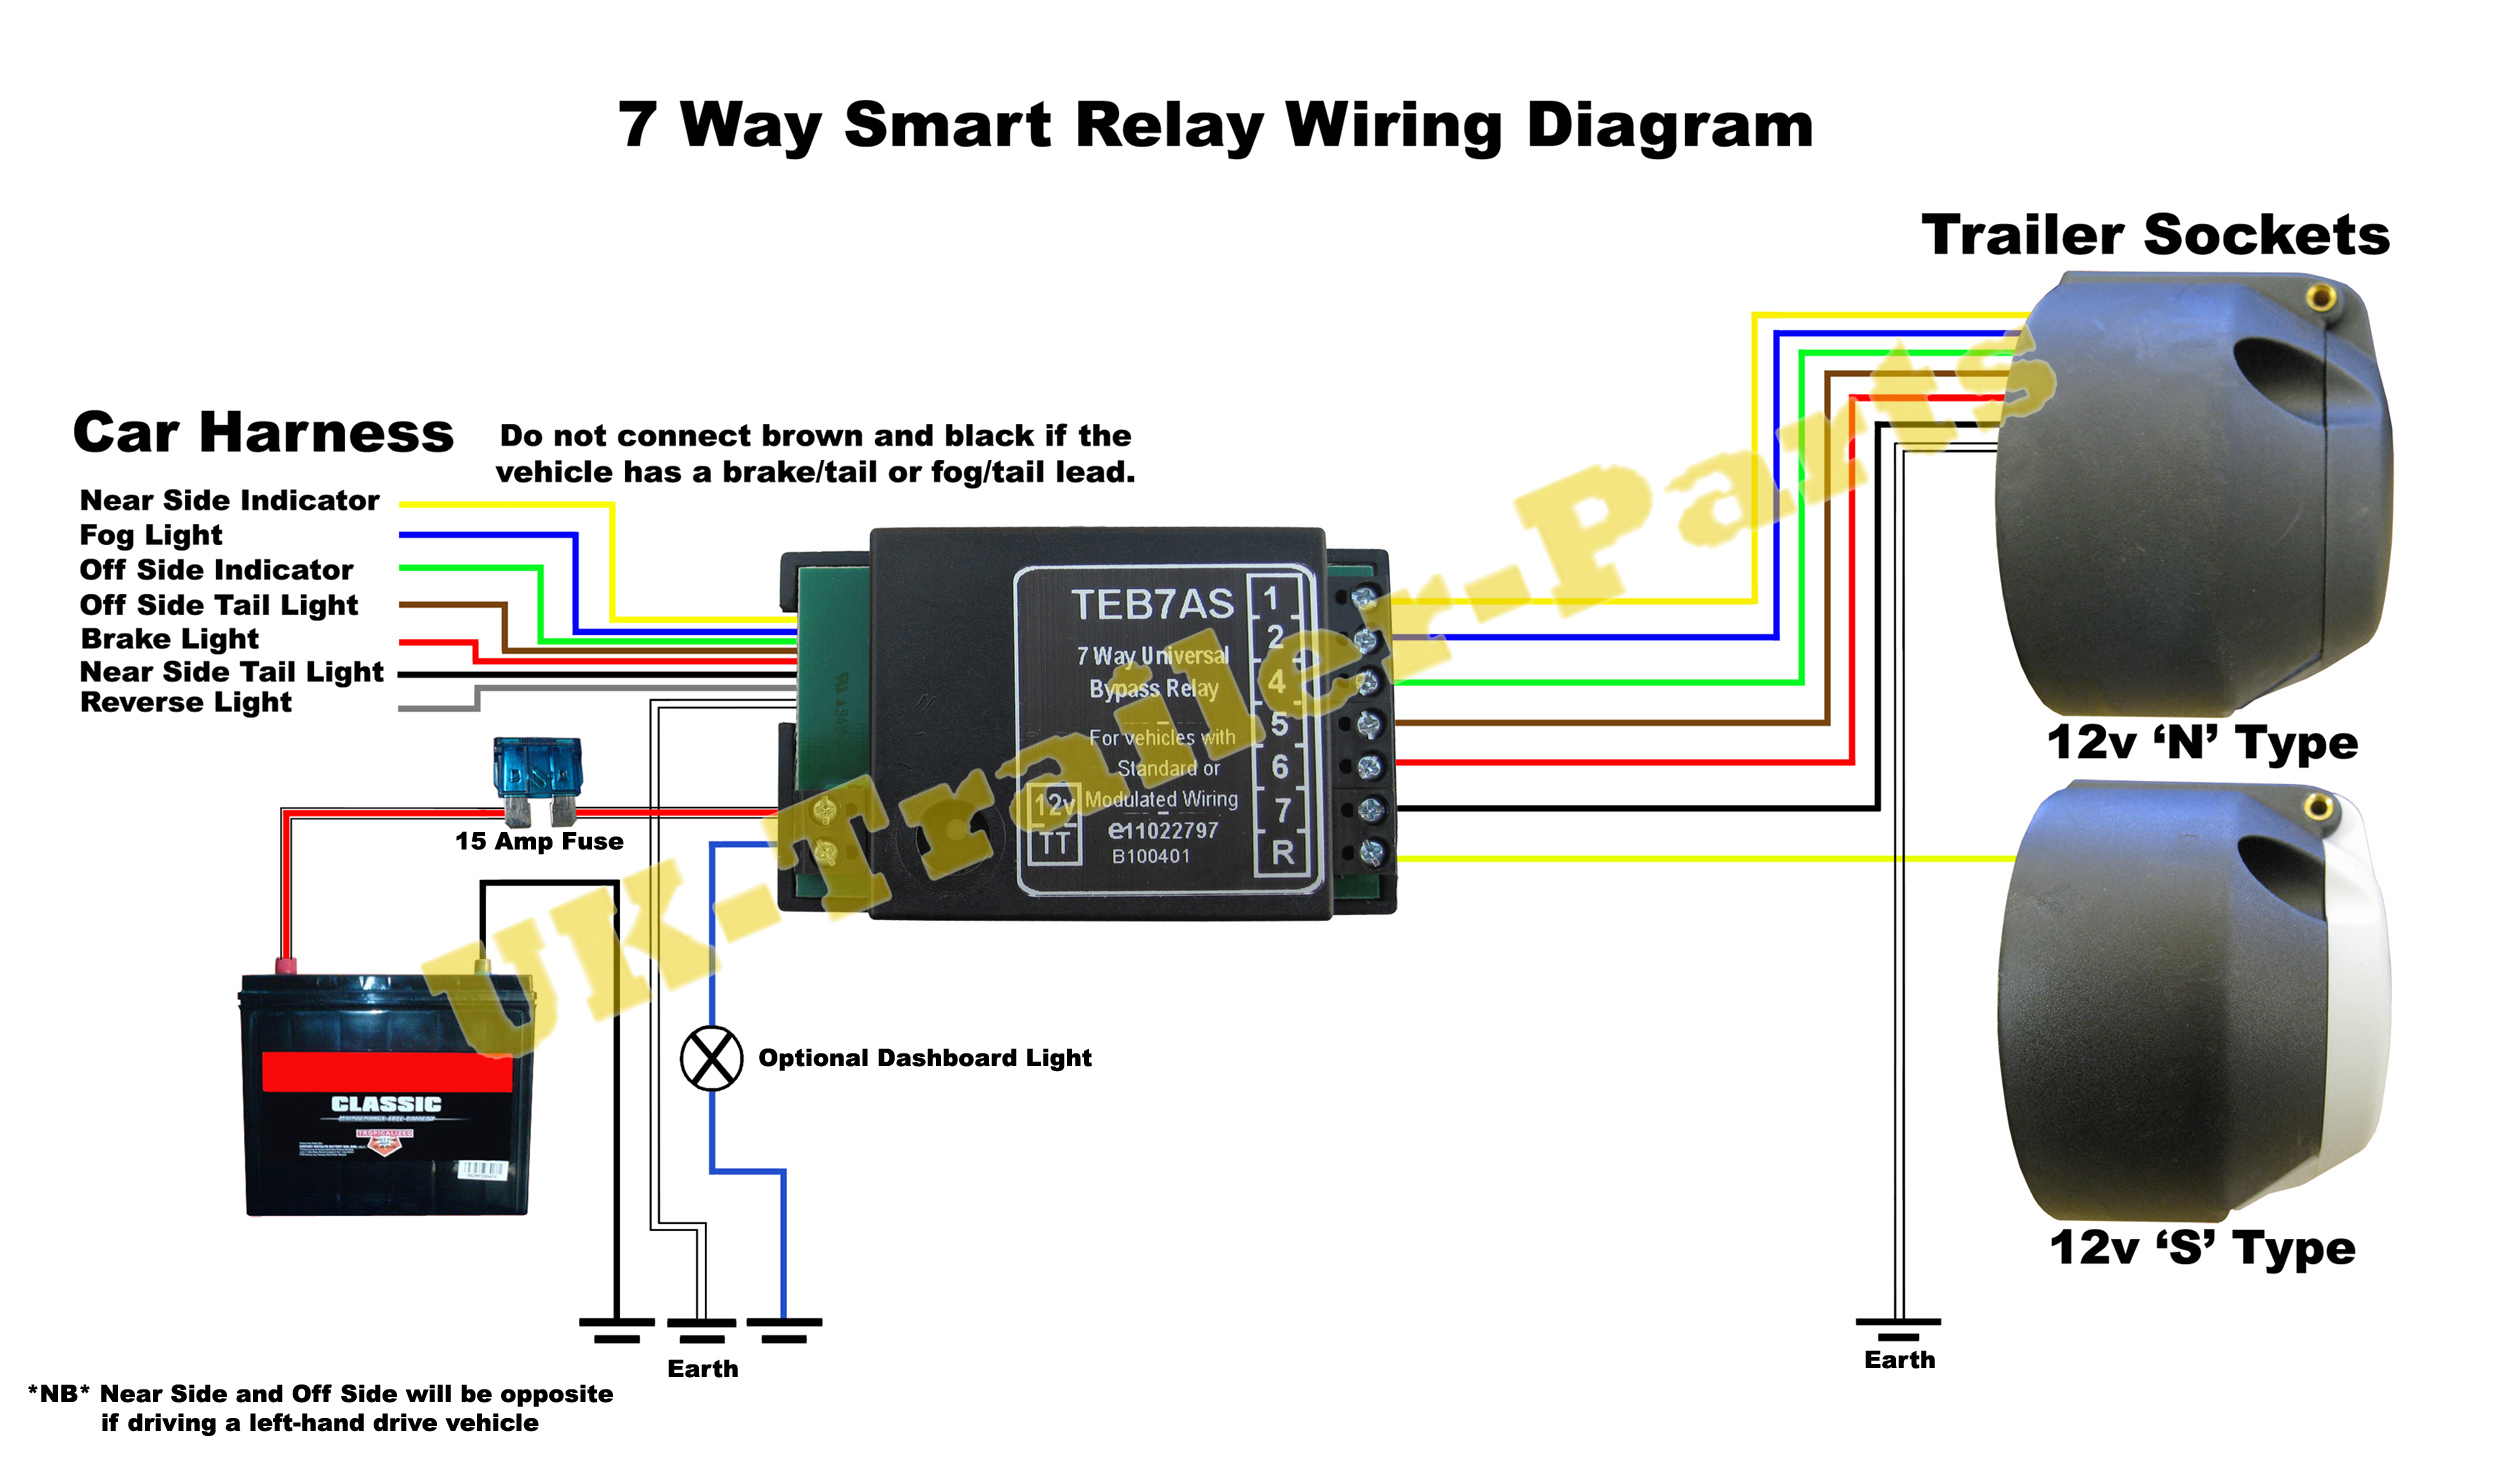 3 Way Switch Wiring Diagram Electric Custom Project Relay Mga 1600 7 Universal Bypass Uk Trailer Parts